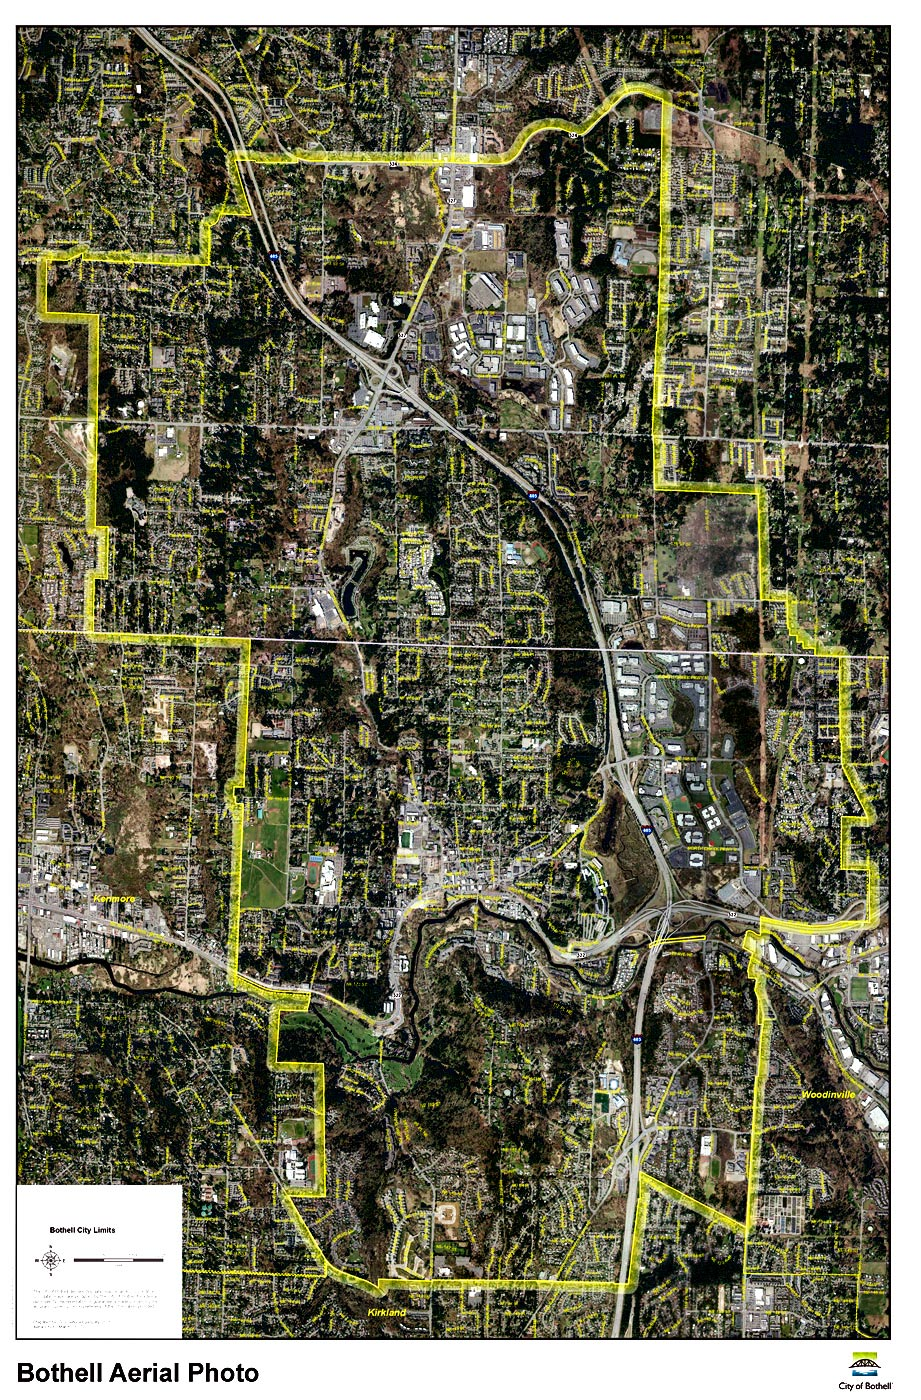 Bothell City Boundary Map